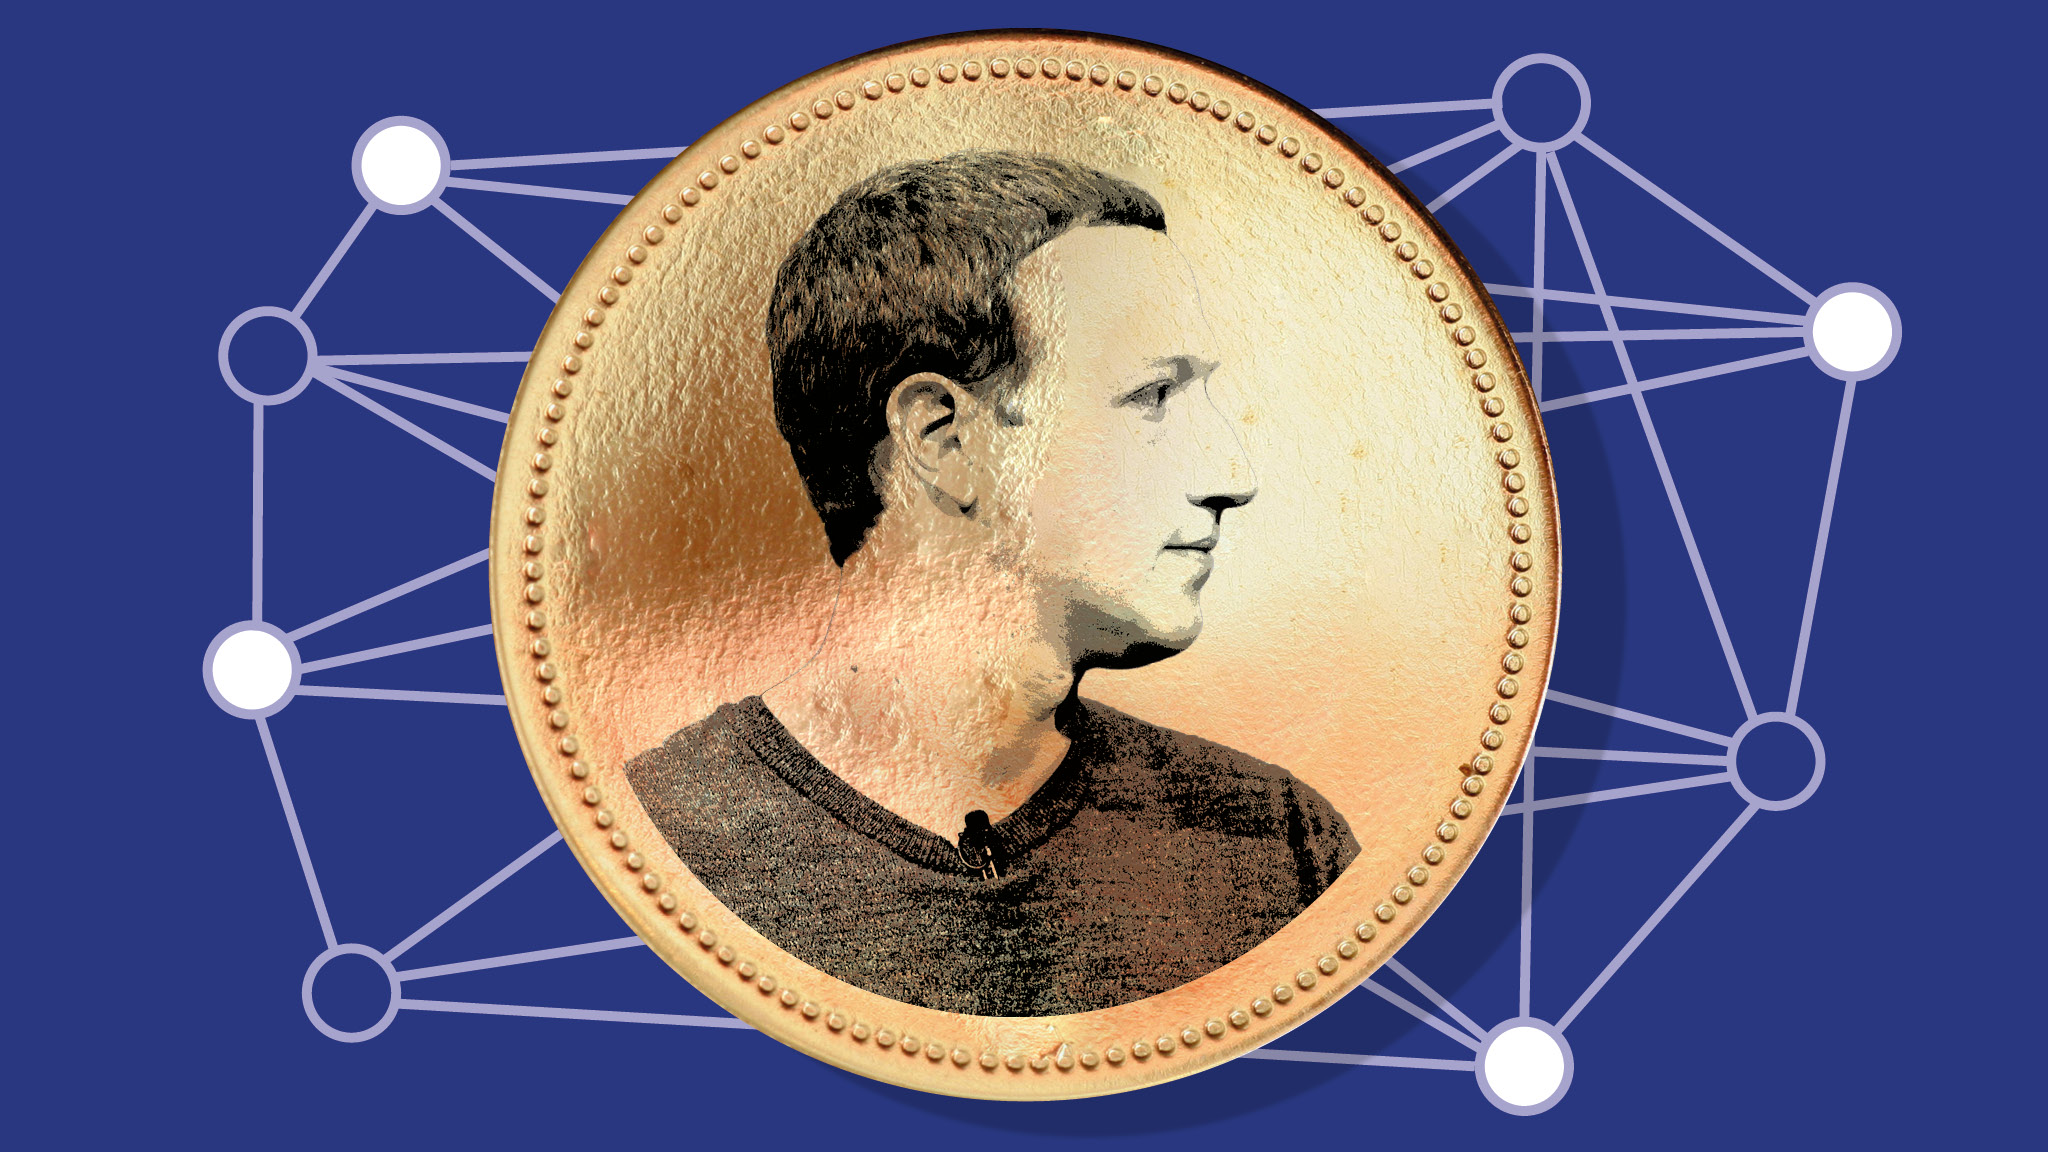 Facebook unveils global digital coin called Libra